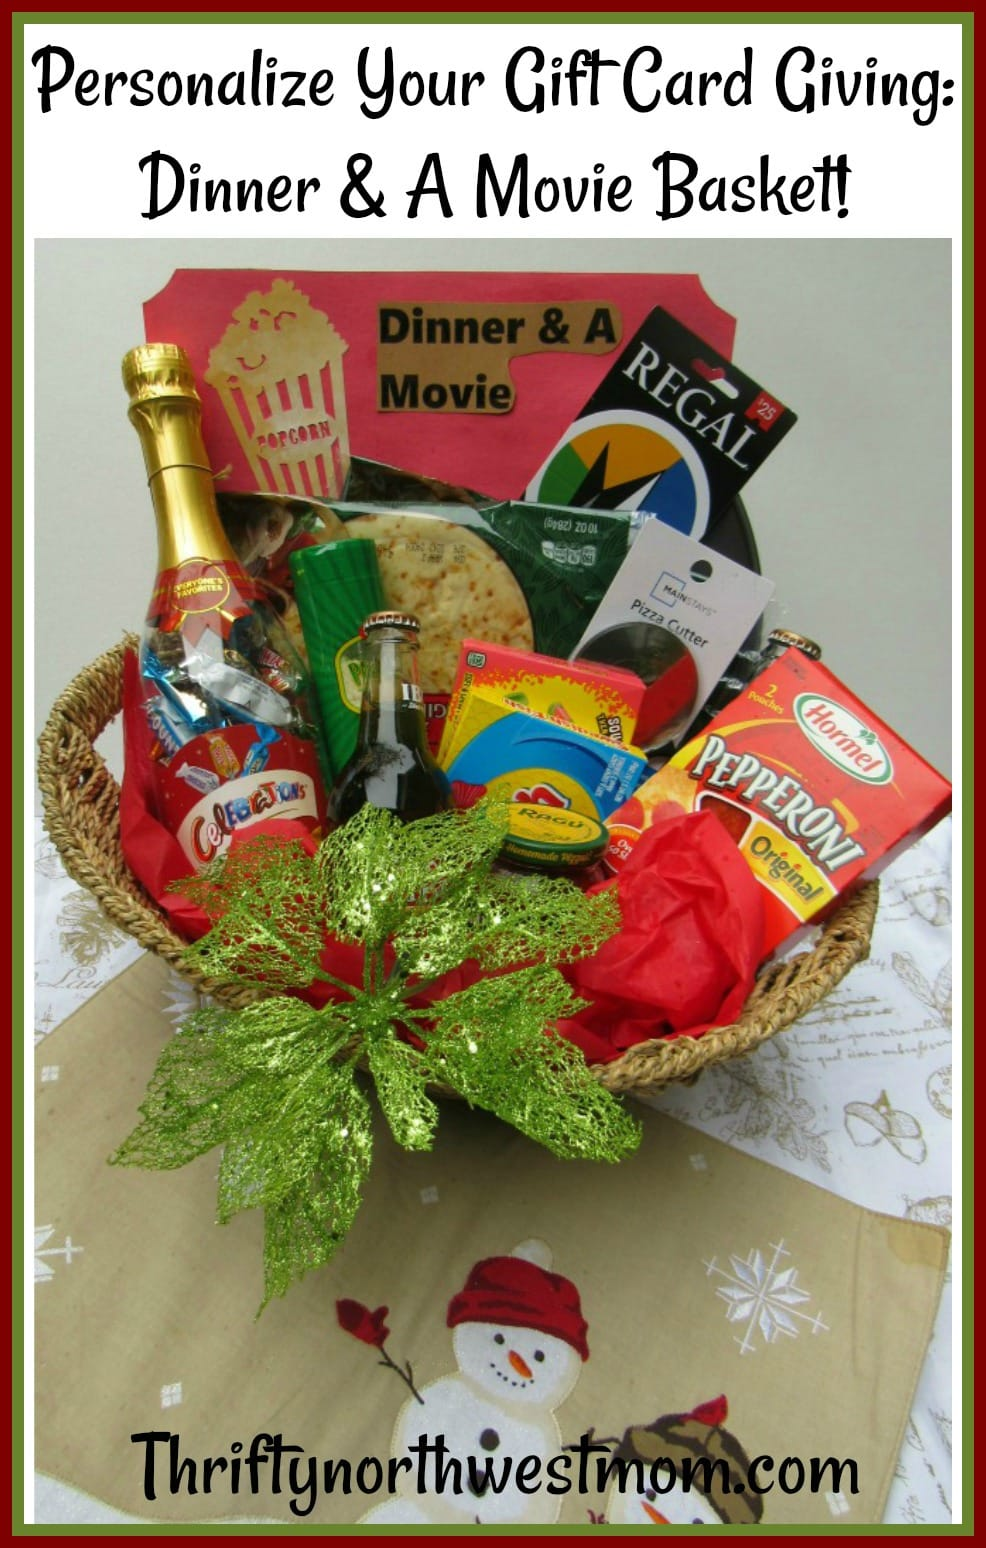 Dinner & A Movie Gift Basket Idea - How to Personalize Your Gift ...